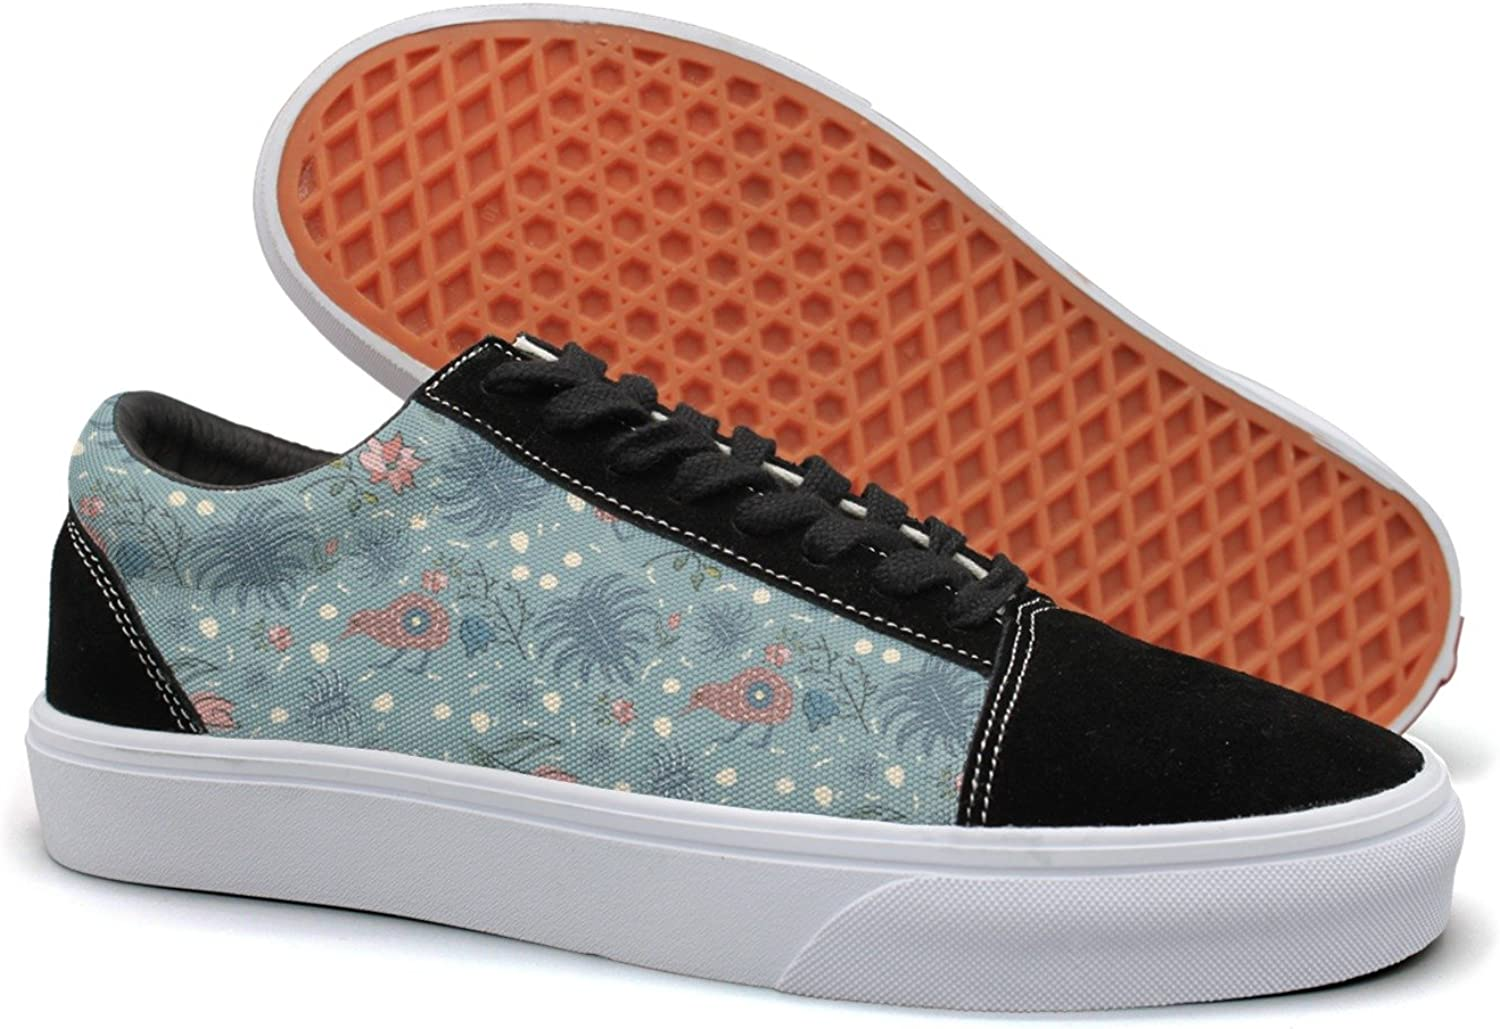 Hjkggd fgfds Casual Exotic Kiwi Bird Young Women Canvas Sneakers shoes